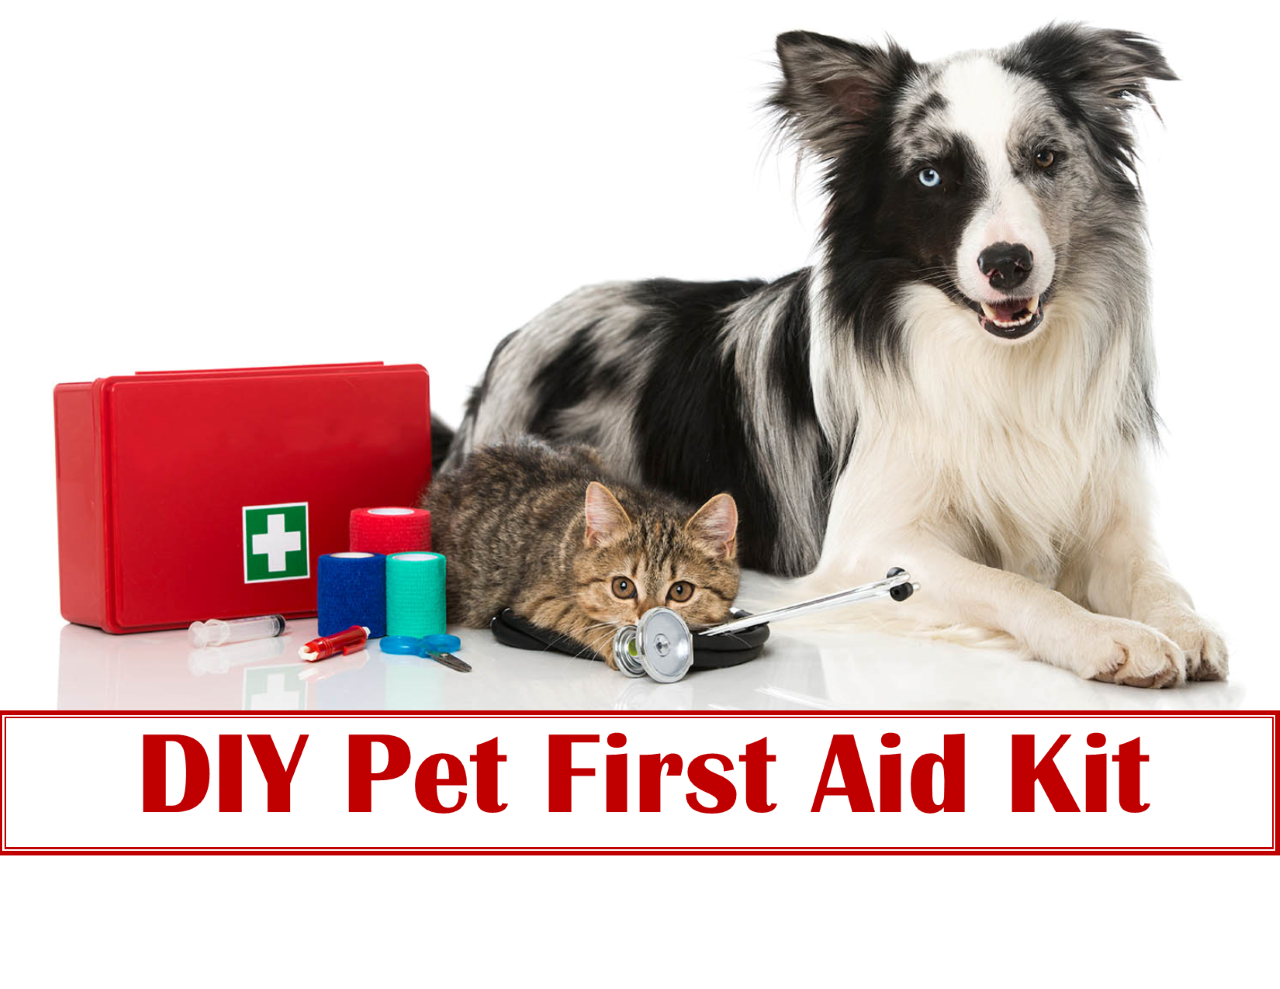 <a href='http://potsdamhumanesociety.org/wp/?p=11185'>Pet Poison Prevention: Be Prepared</a>